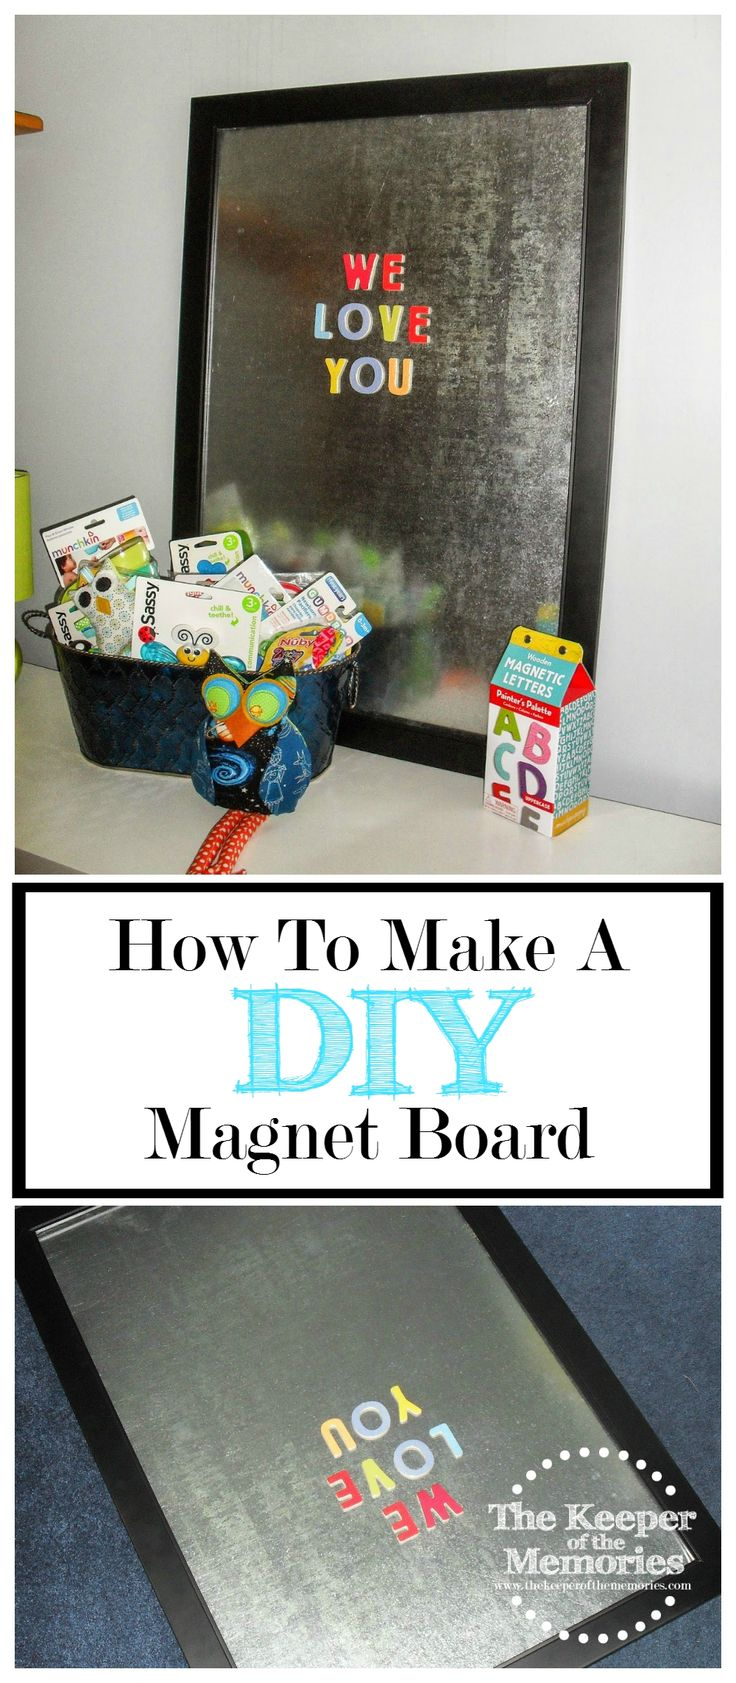 25+ unique Diy magnetic board ideas on Pinterest | Magnetic boards ...